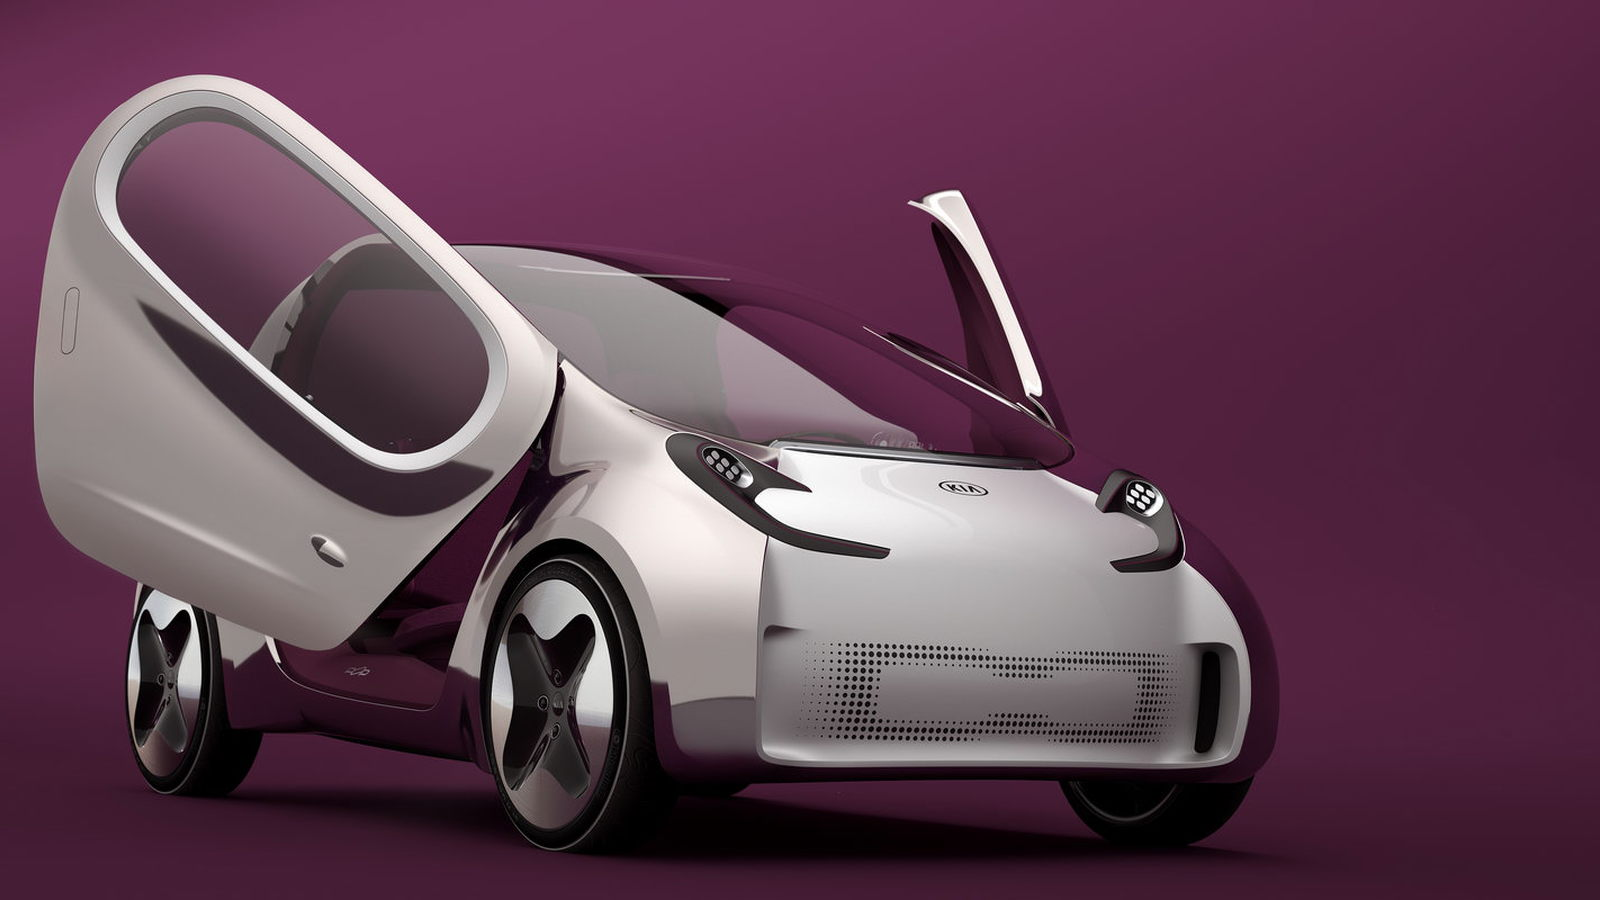 Kia Pop electric-car concept, 2010 Paris Motor Show